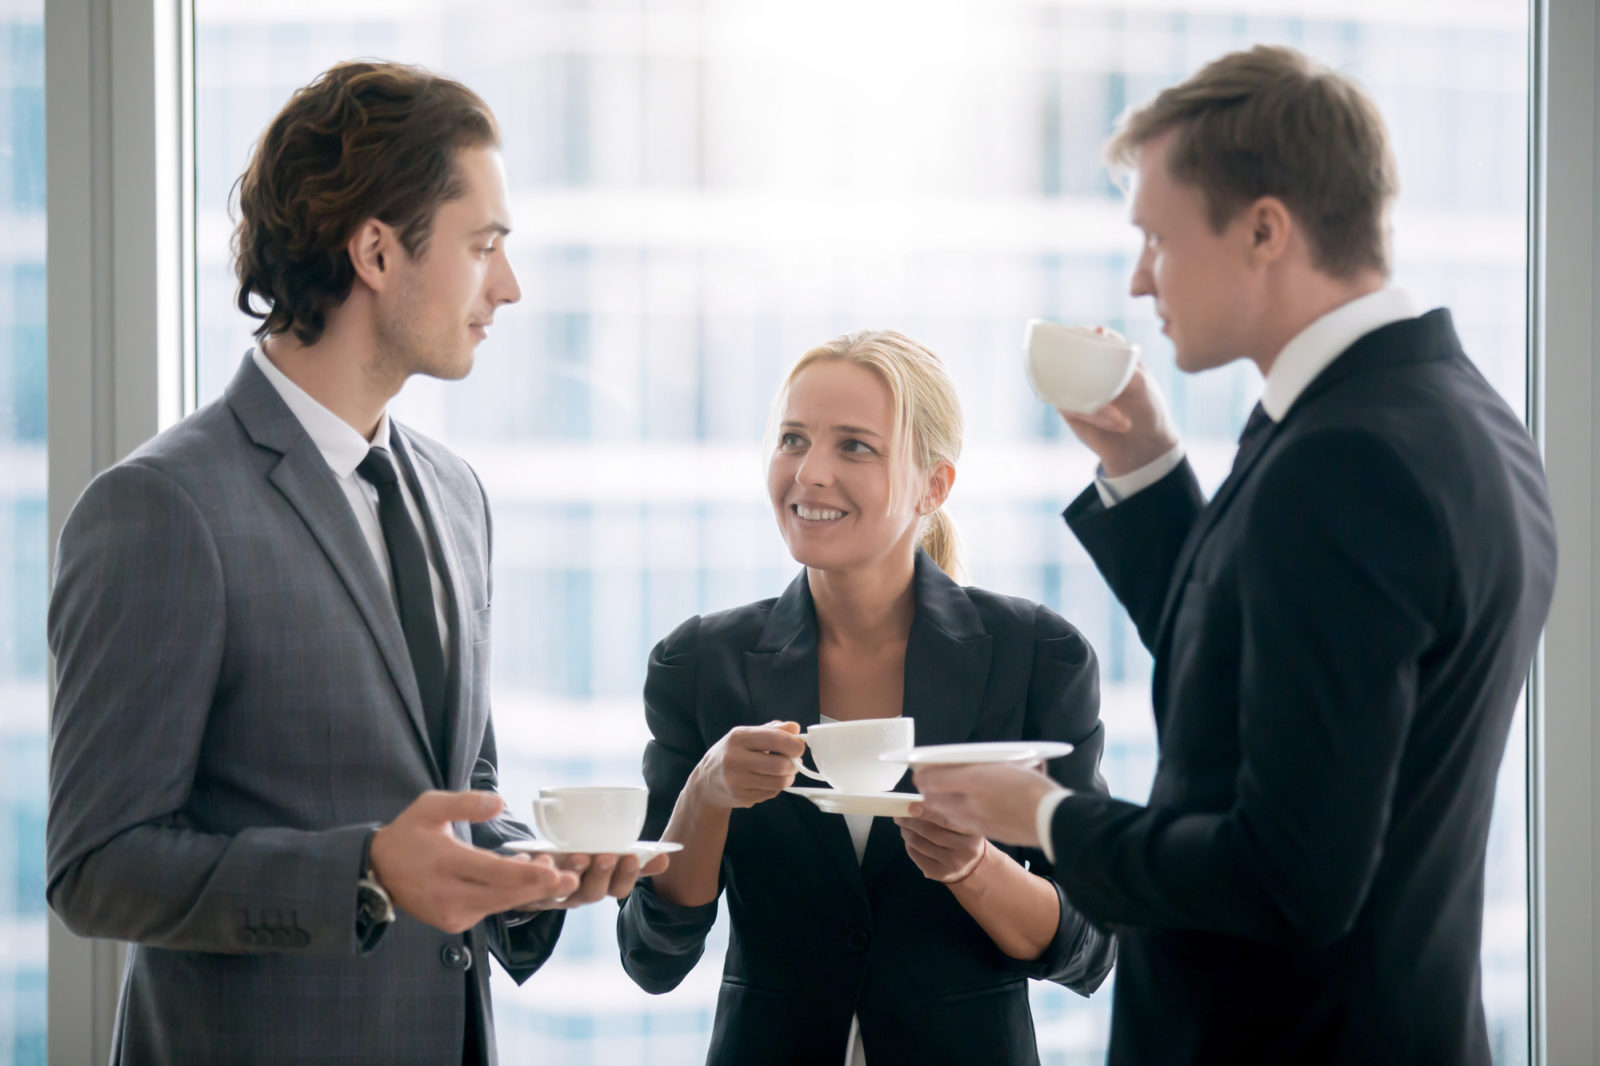 employees meeting over coffee